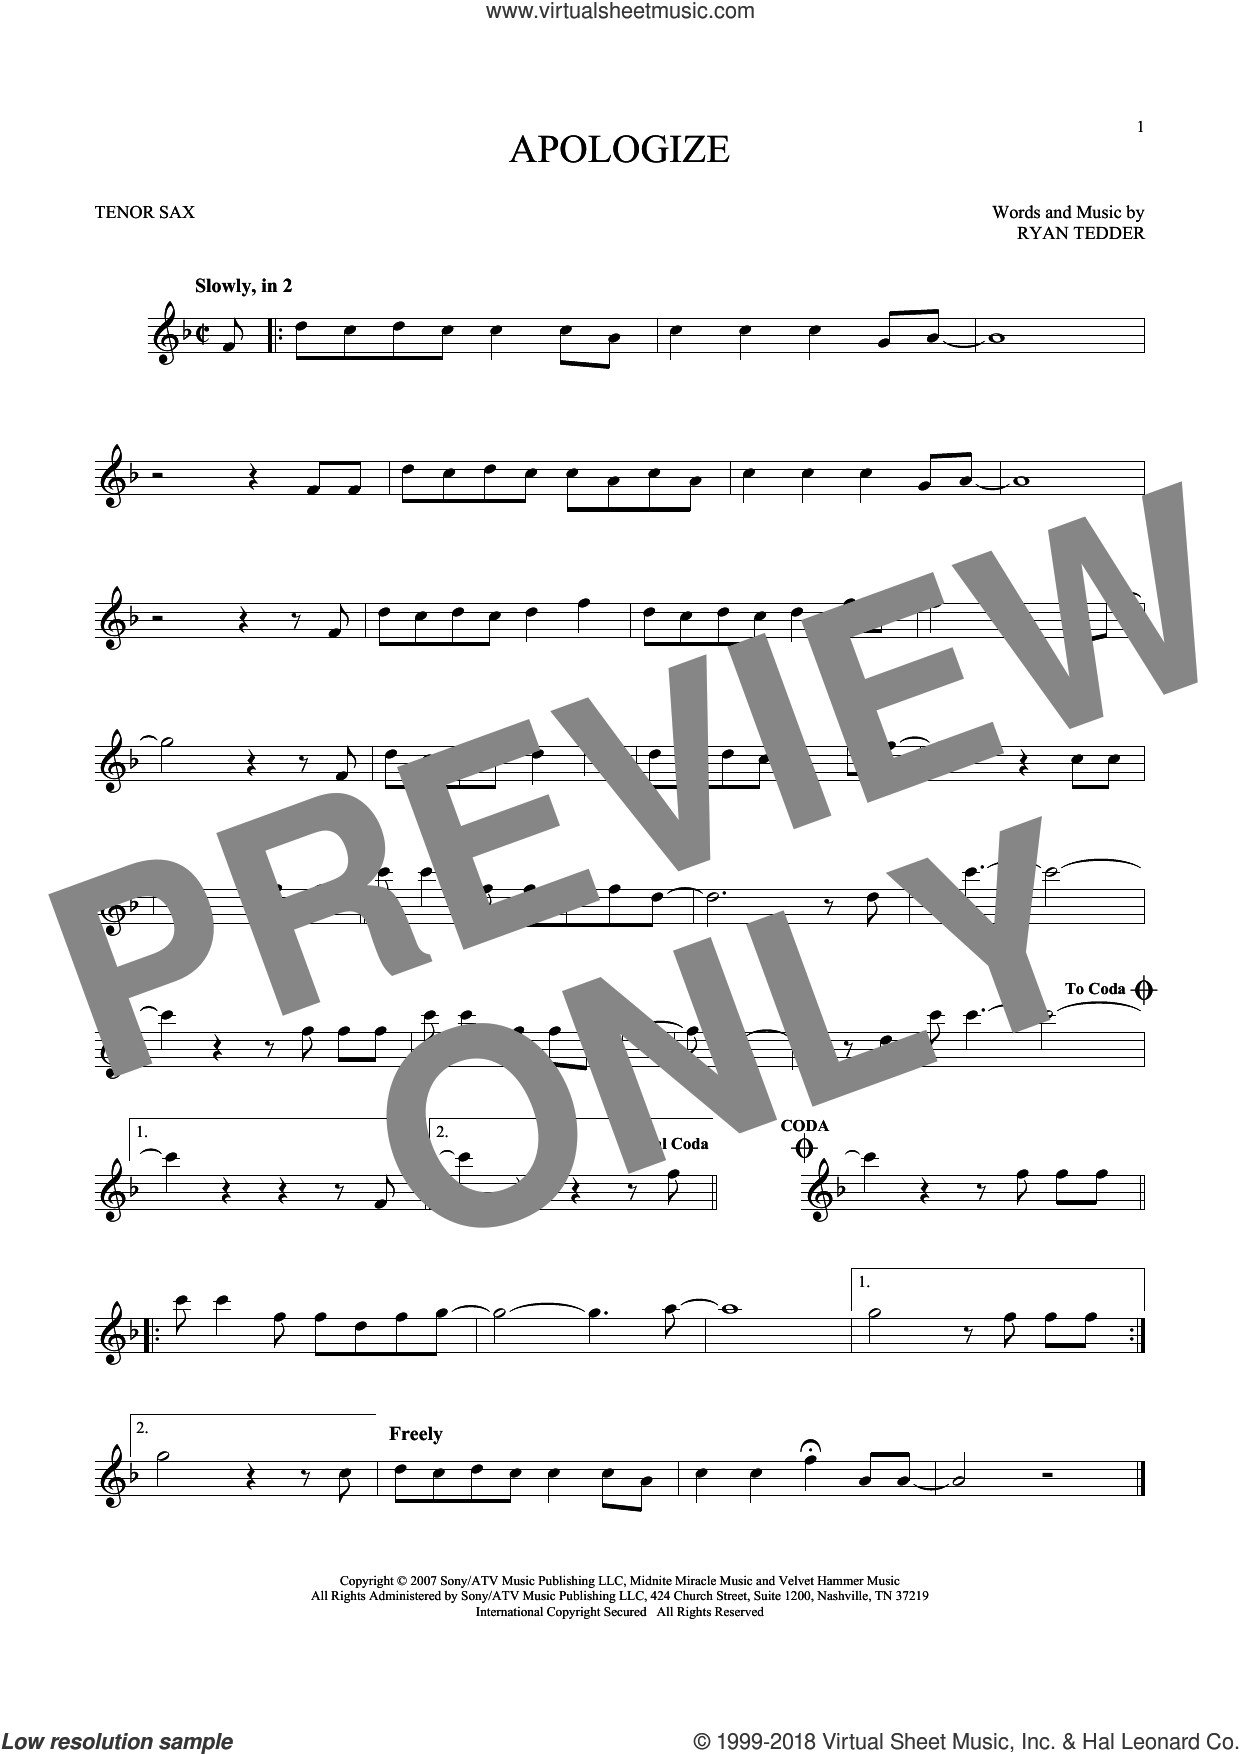 Apologize sheet music for tenor saxophone solo by Timbaland featuring OneRepublic and Ryan Tedder, intermediate skill level